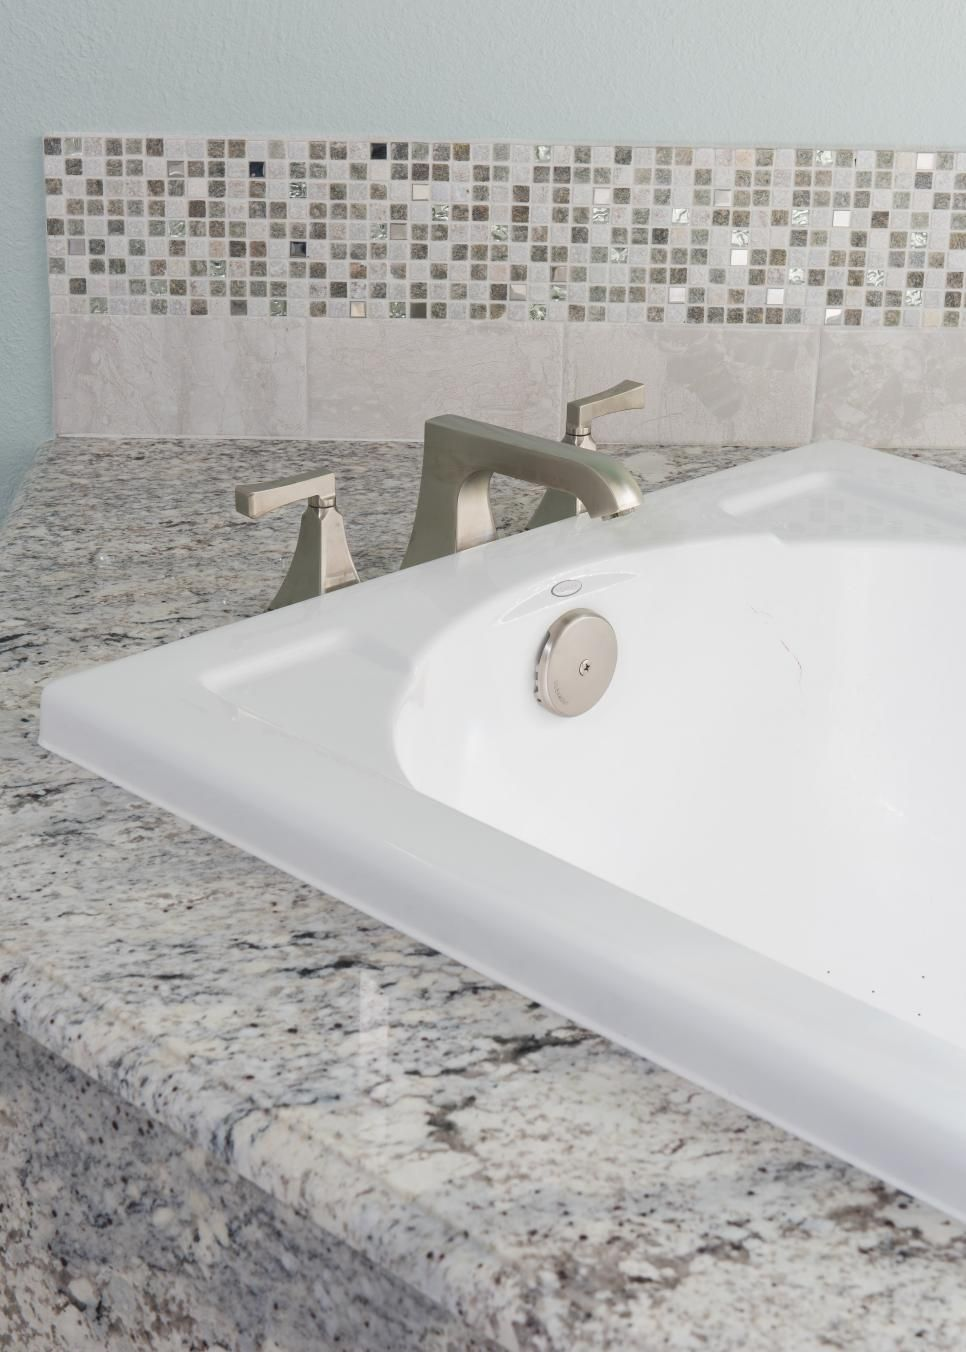 A close look at this bathroom sink showcases the heavy stone ...